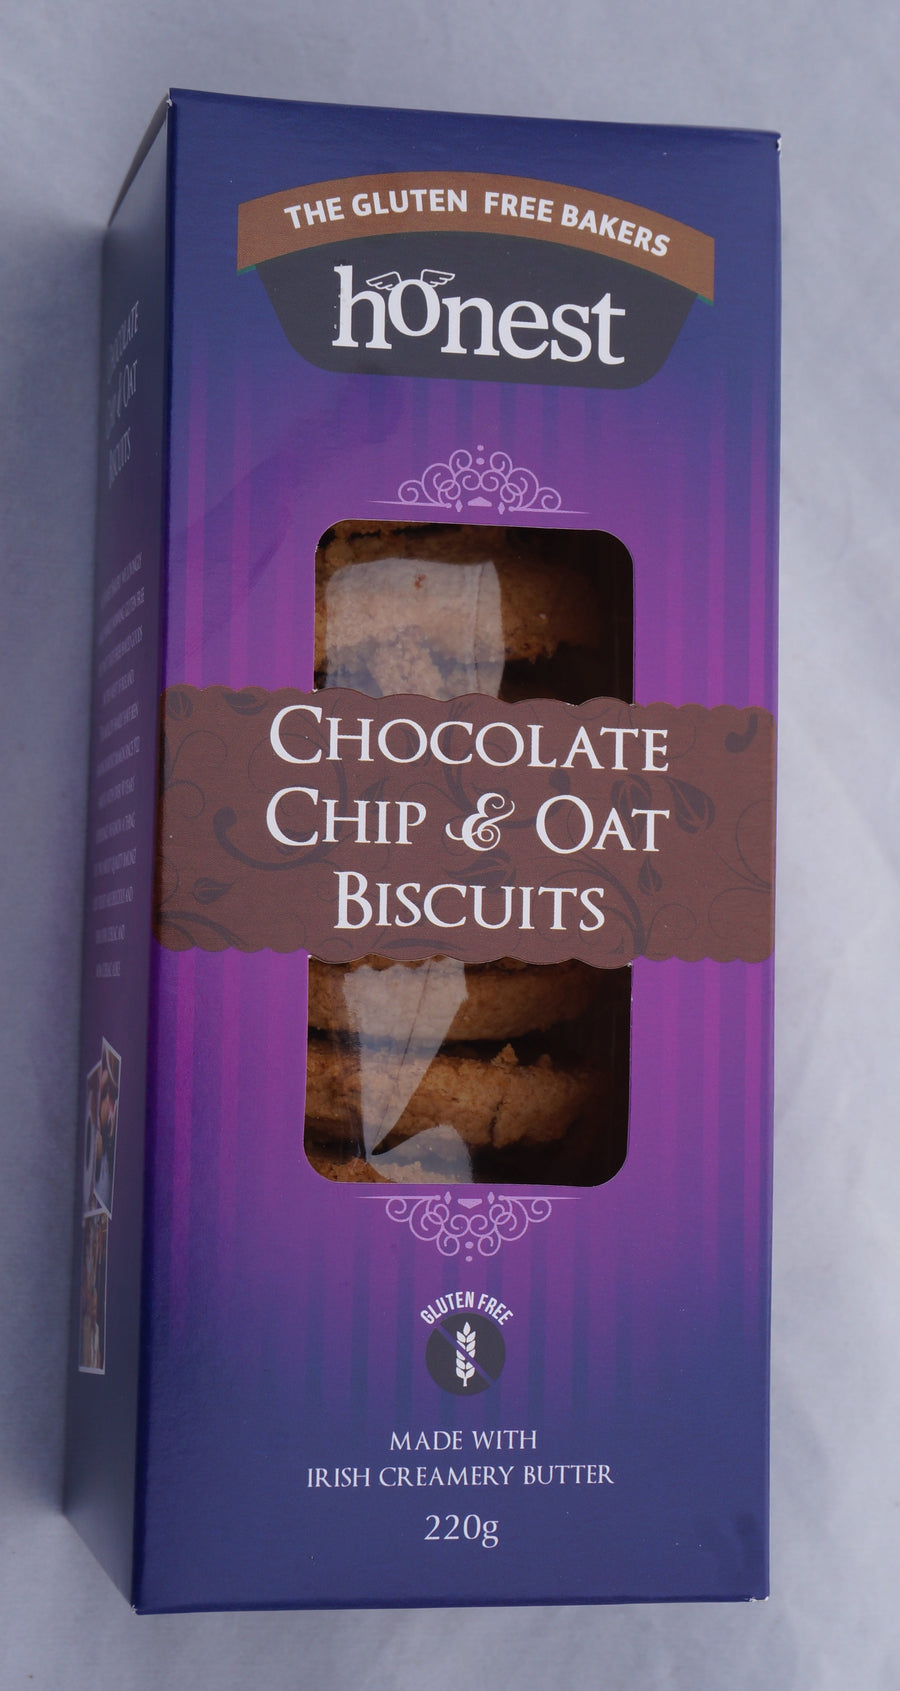 Gluten Free Chocolate Chip & Oat Biscuit Product Image